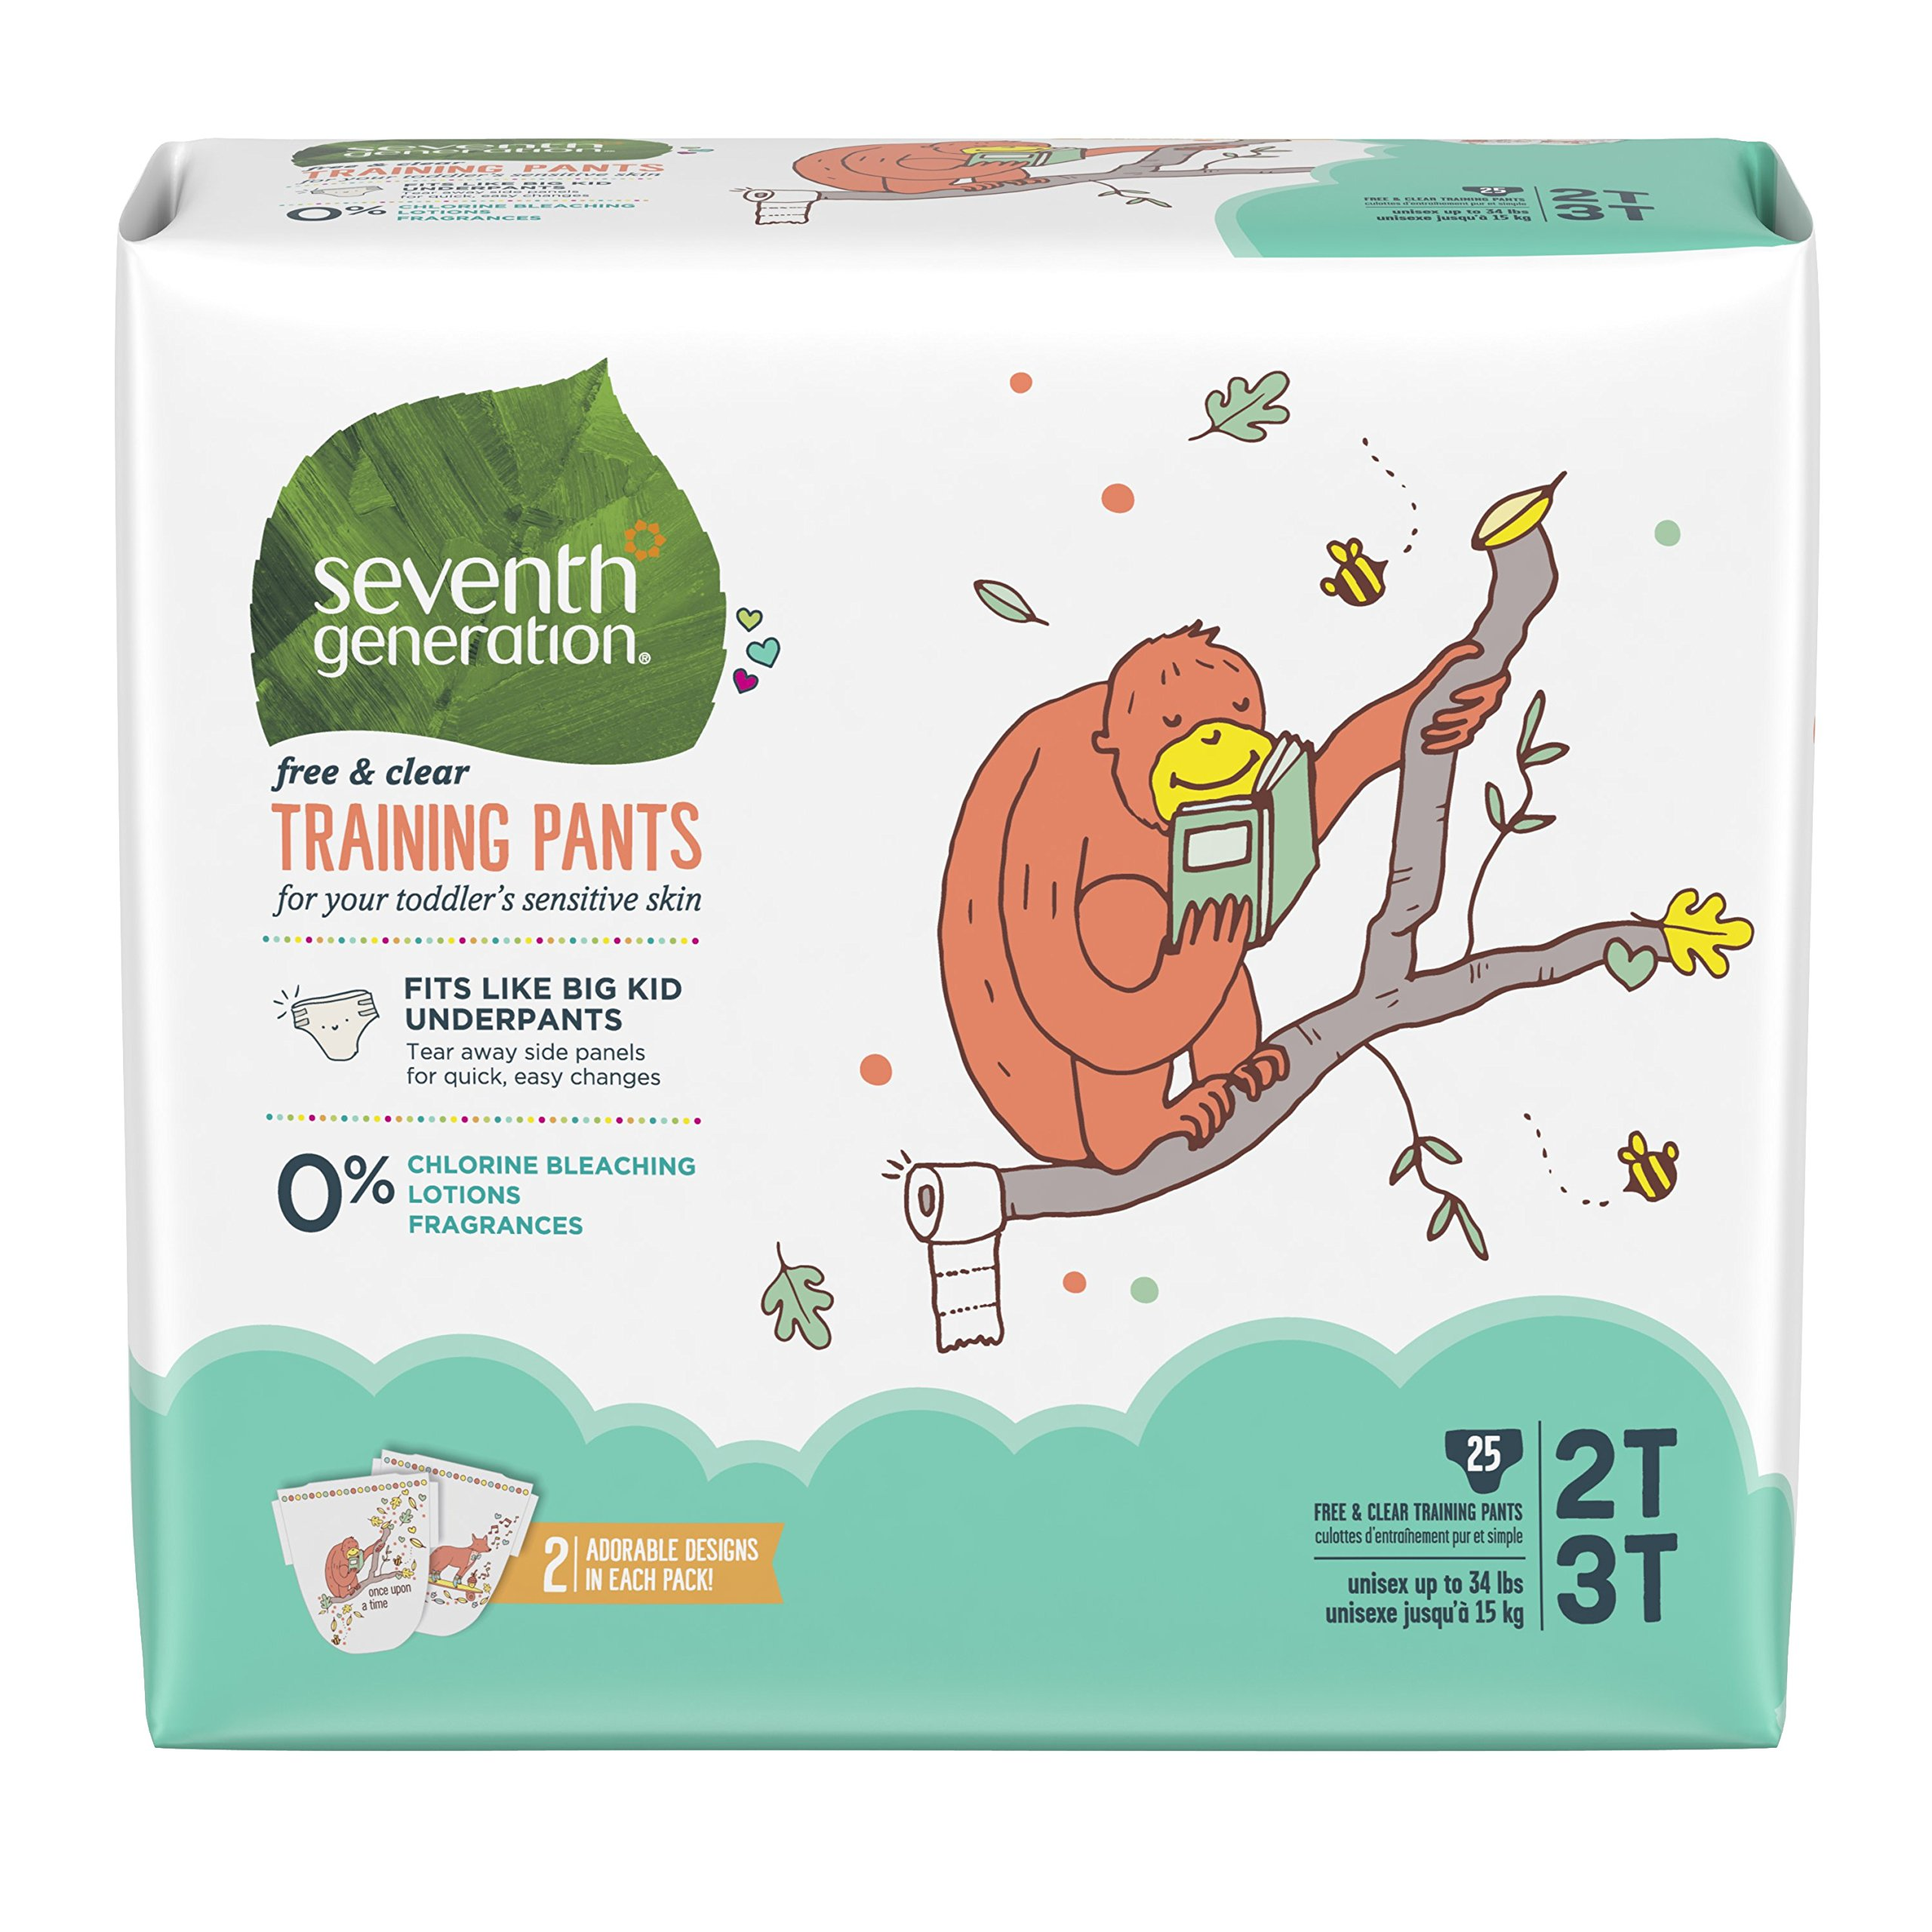 Seventh Generation Baby & Toddler Training Pants, Free & Clear, Medium Size 2T-3T up to 35lbs, 25ct